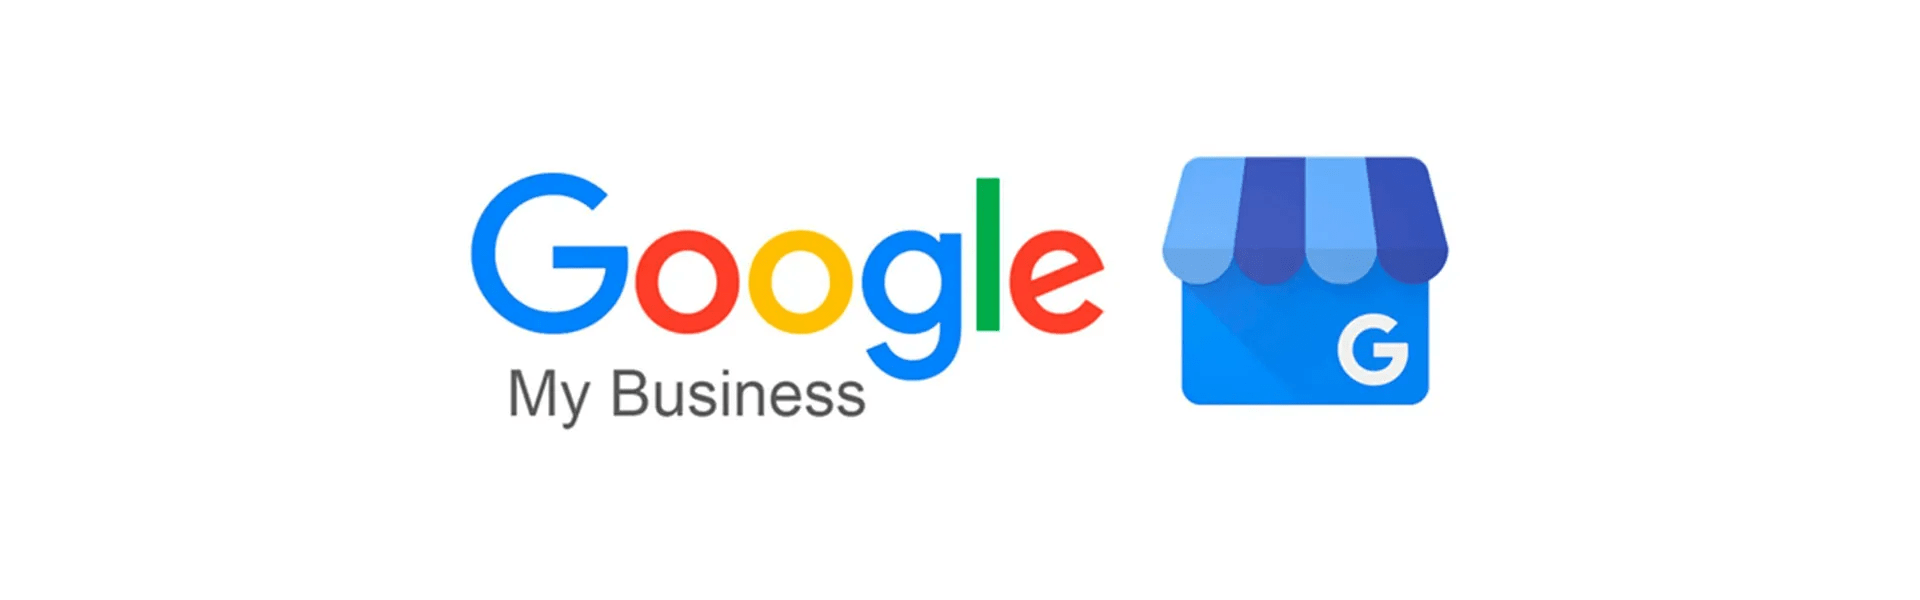 Google My Business Logo 1920x600.png